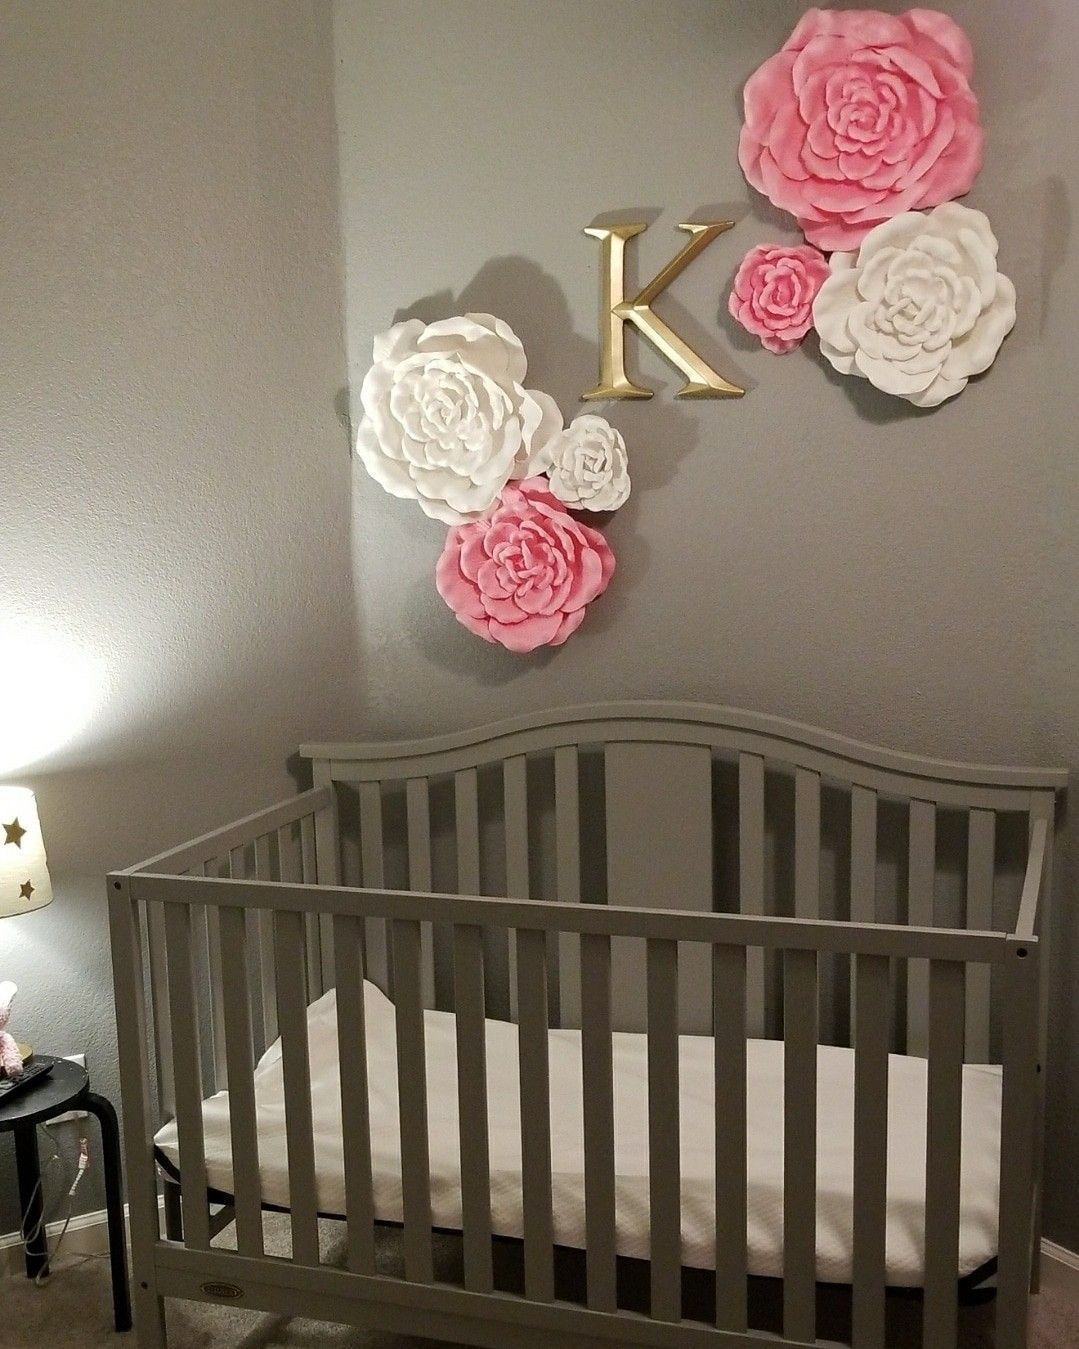 My nursery for my baby girl! Flowers and letter from hobby